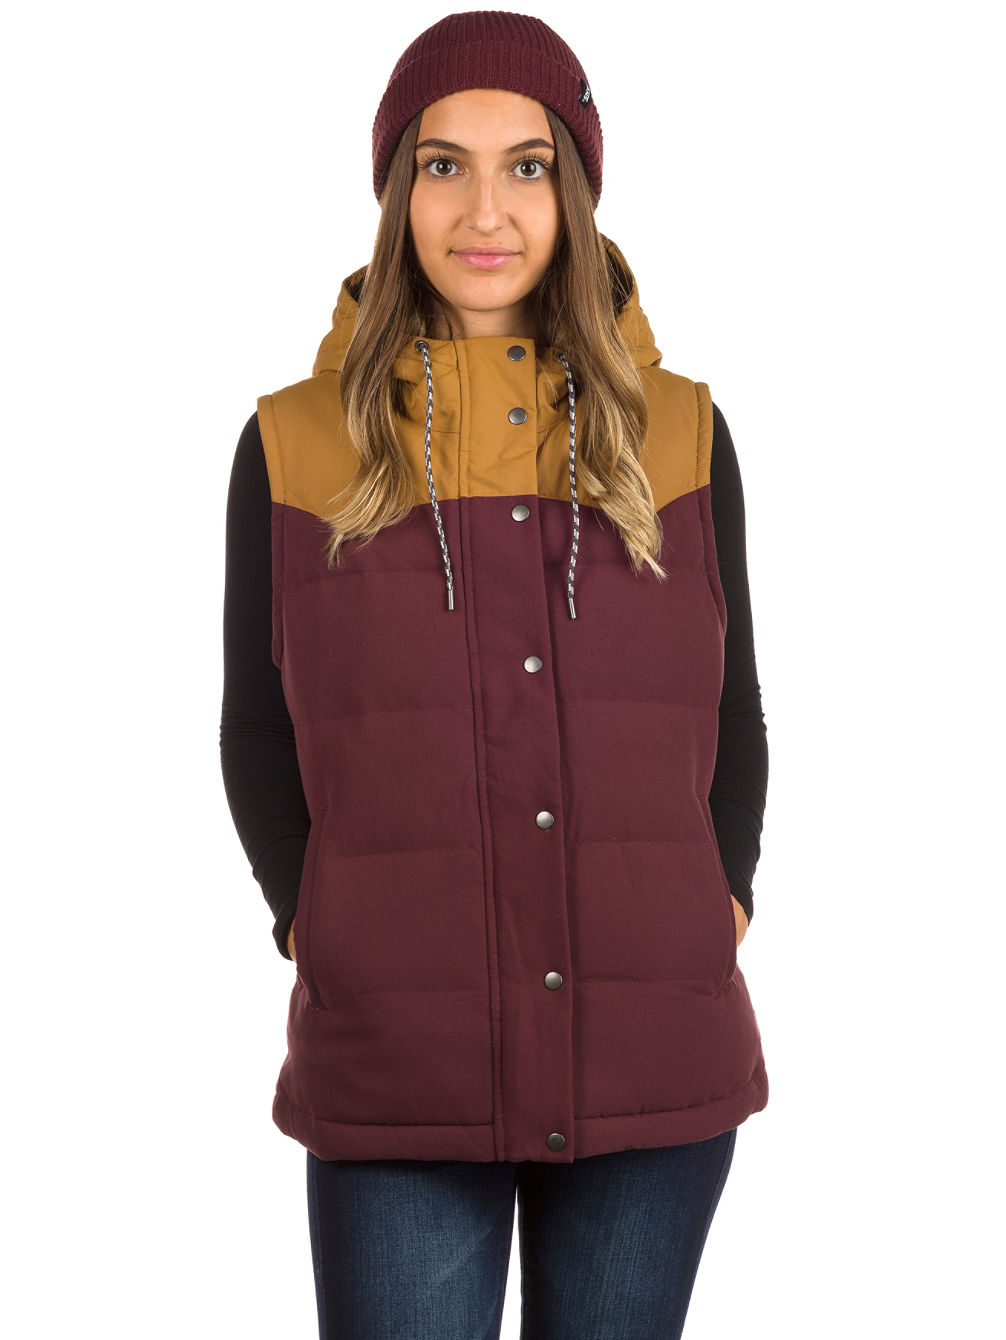 7832e4e6391 Buy Patagonia Bivy Hooded Vest online at blue-tomato.com